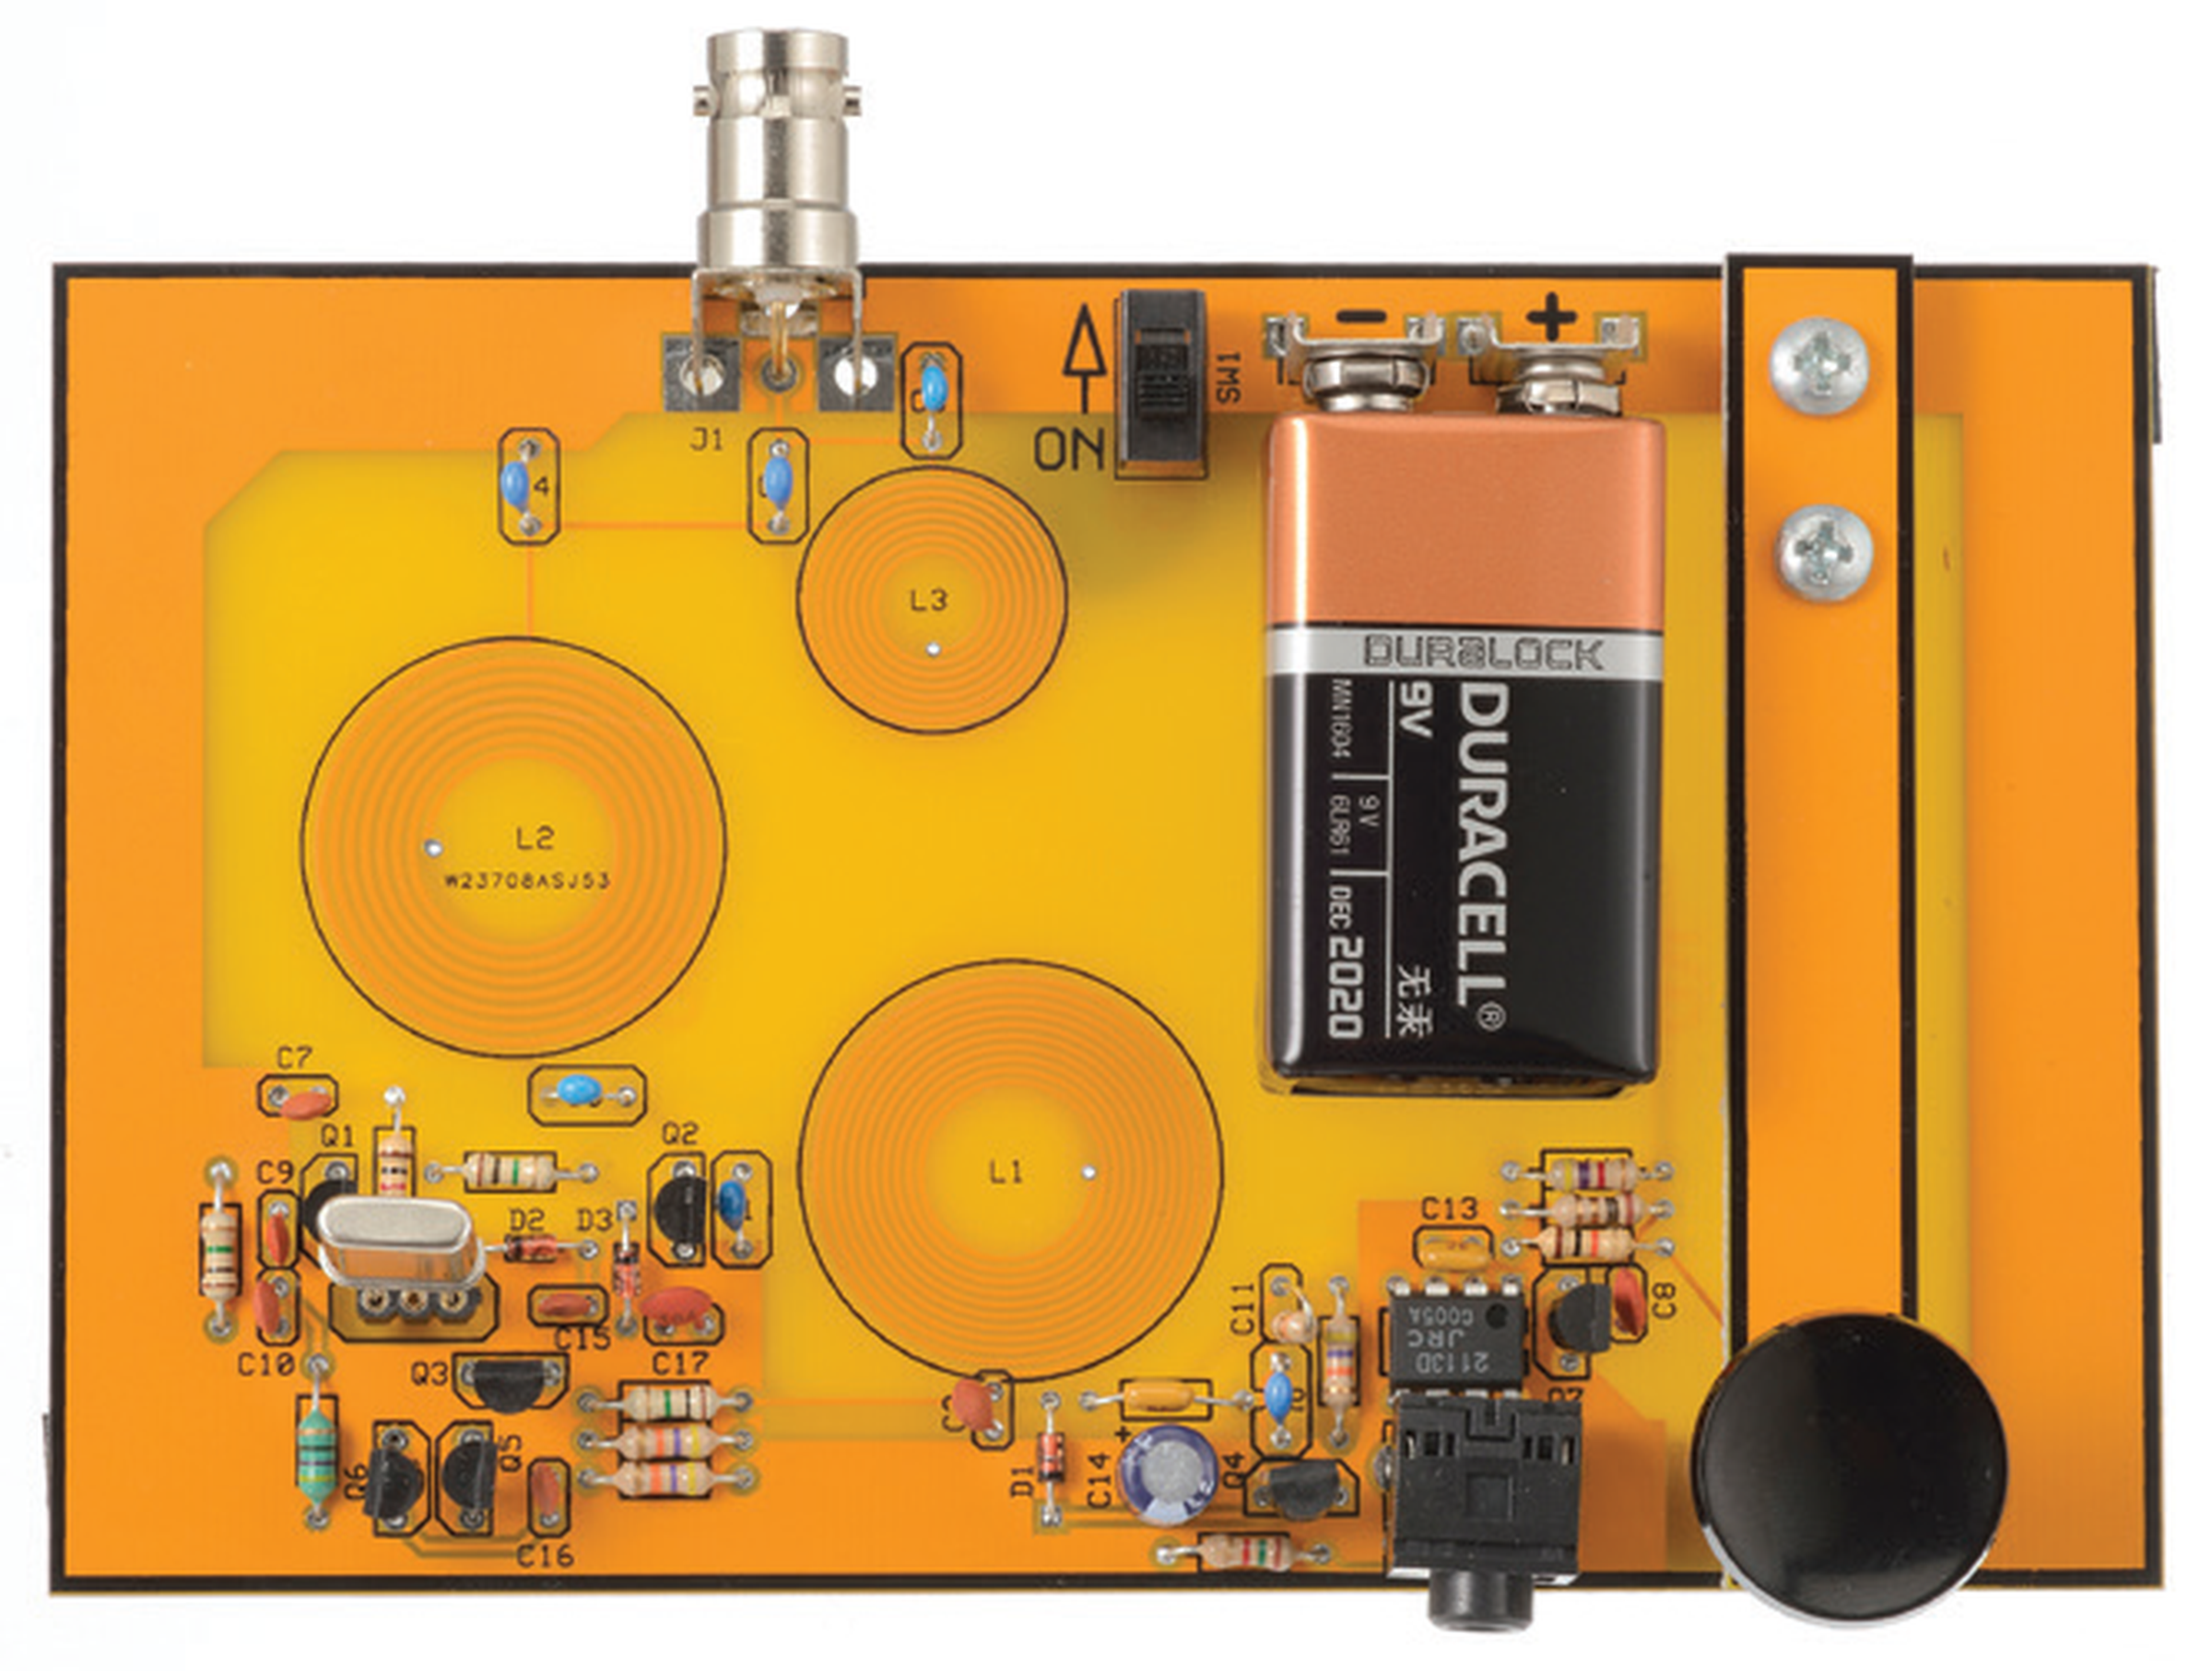 Cricket 80a Minimalist 80m Cw Transceiver From Nm0s Electronics On Simple Electronic Keyer 1